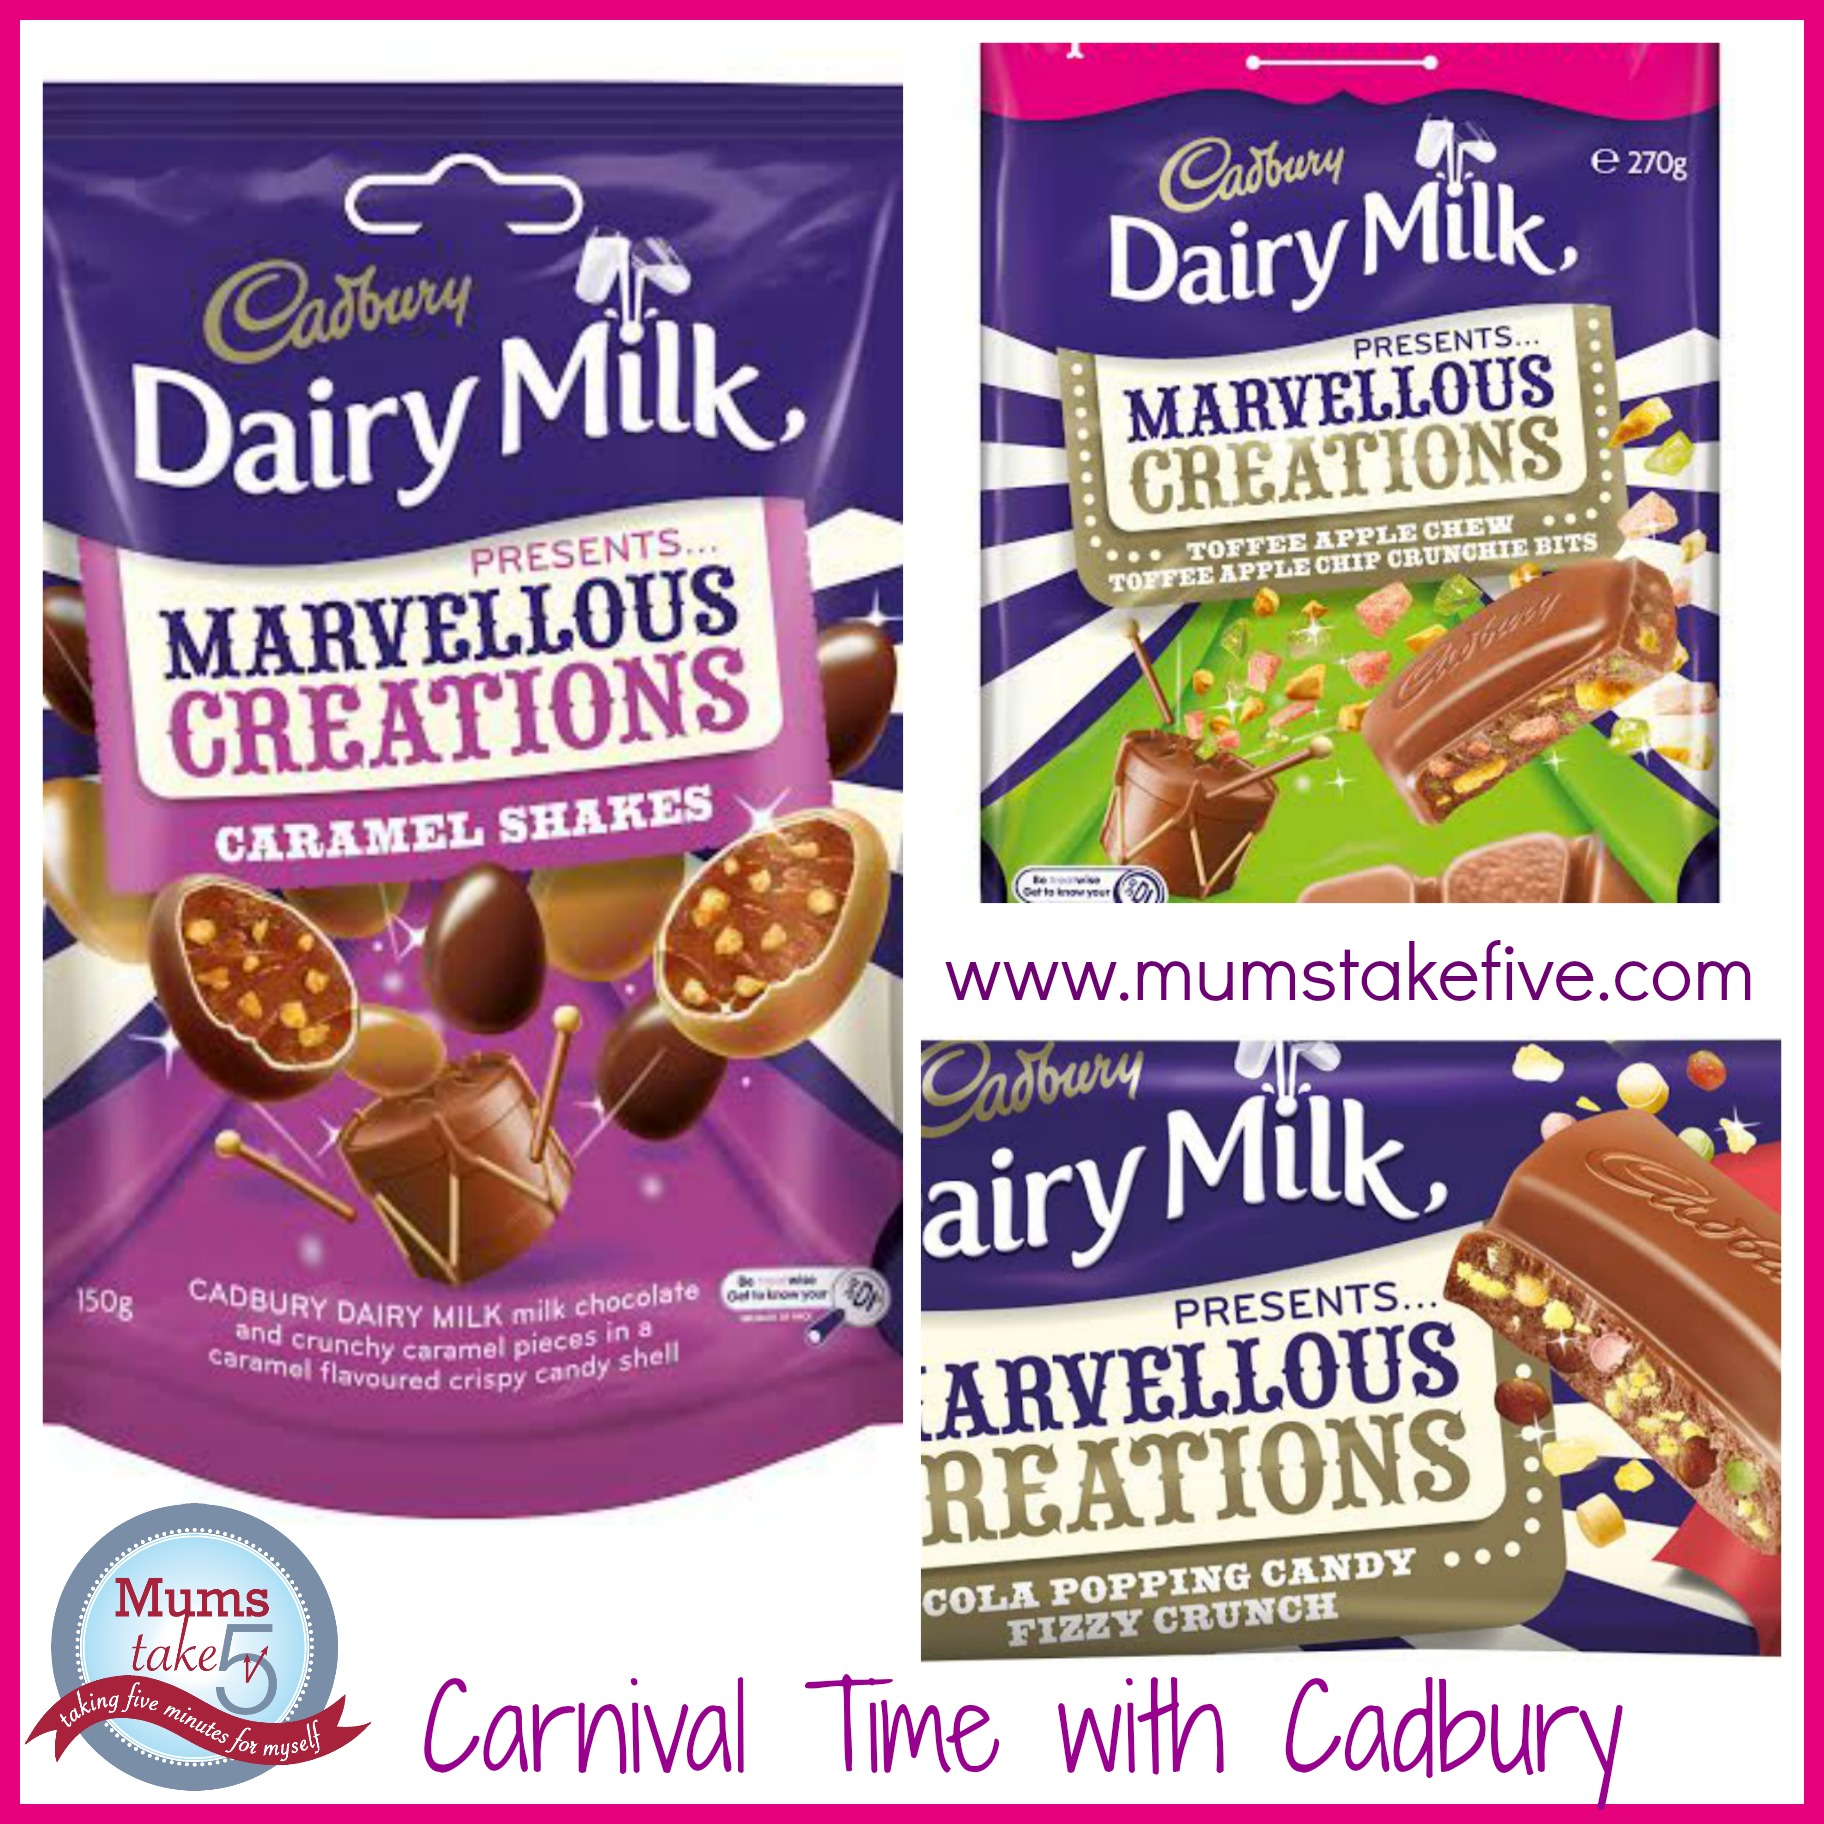 Marvelous Creations: Cadbury Marvellous Creations New Carnival Flavours